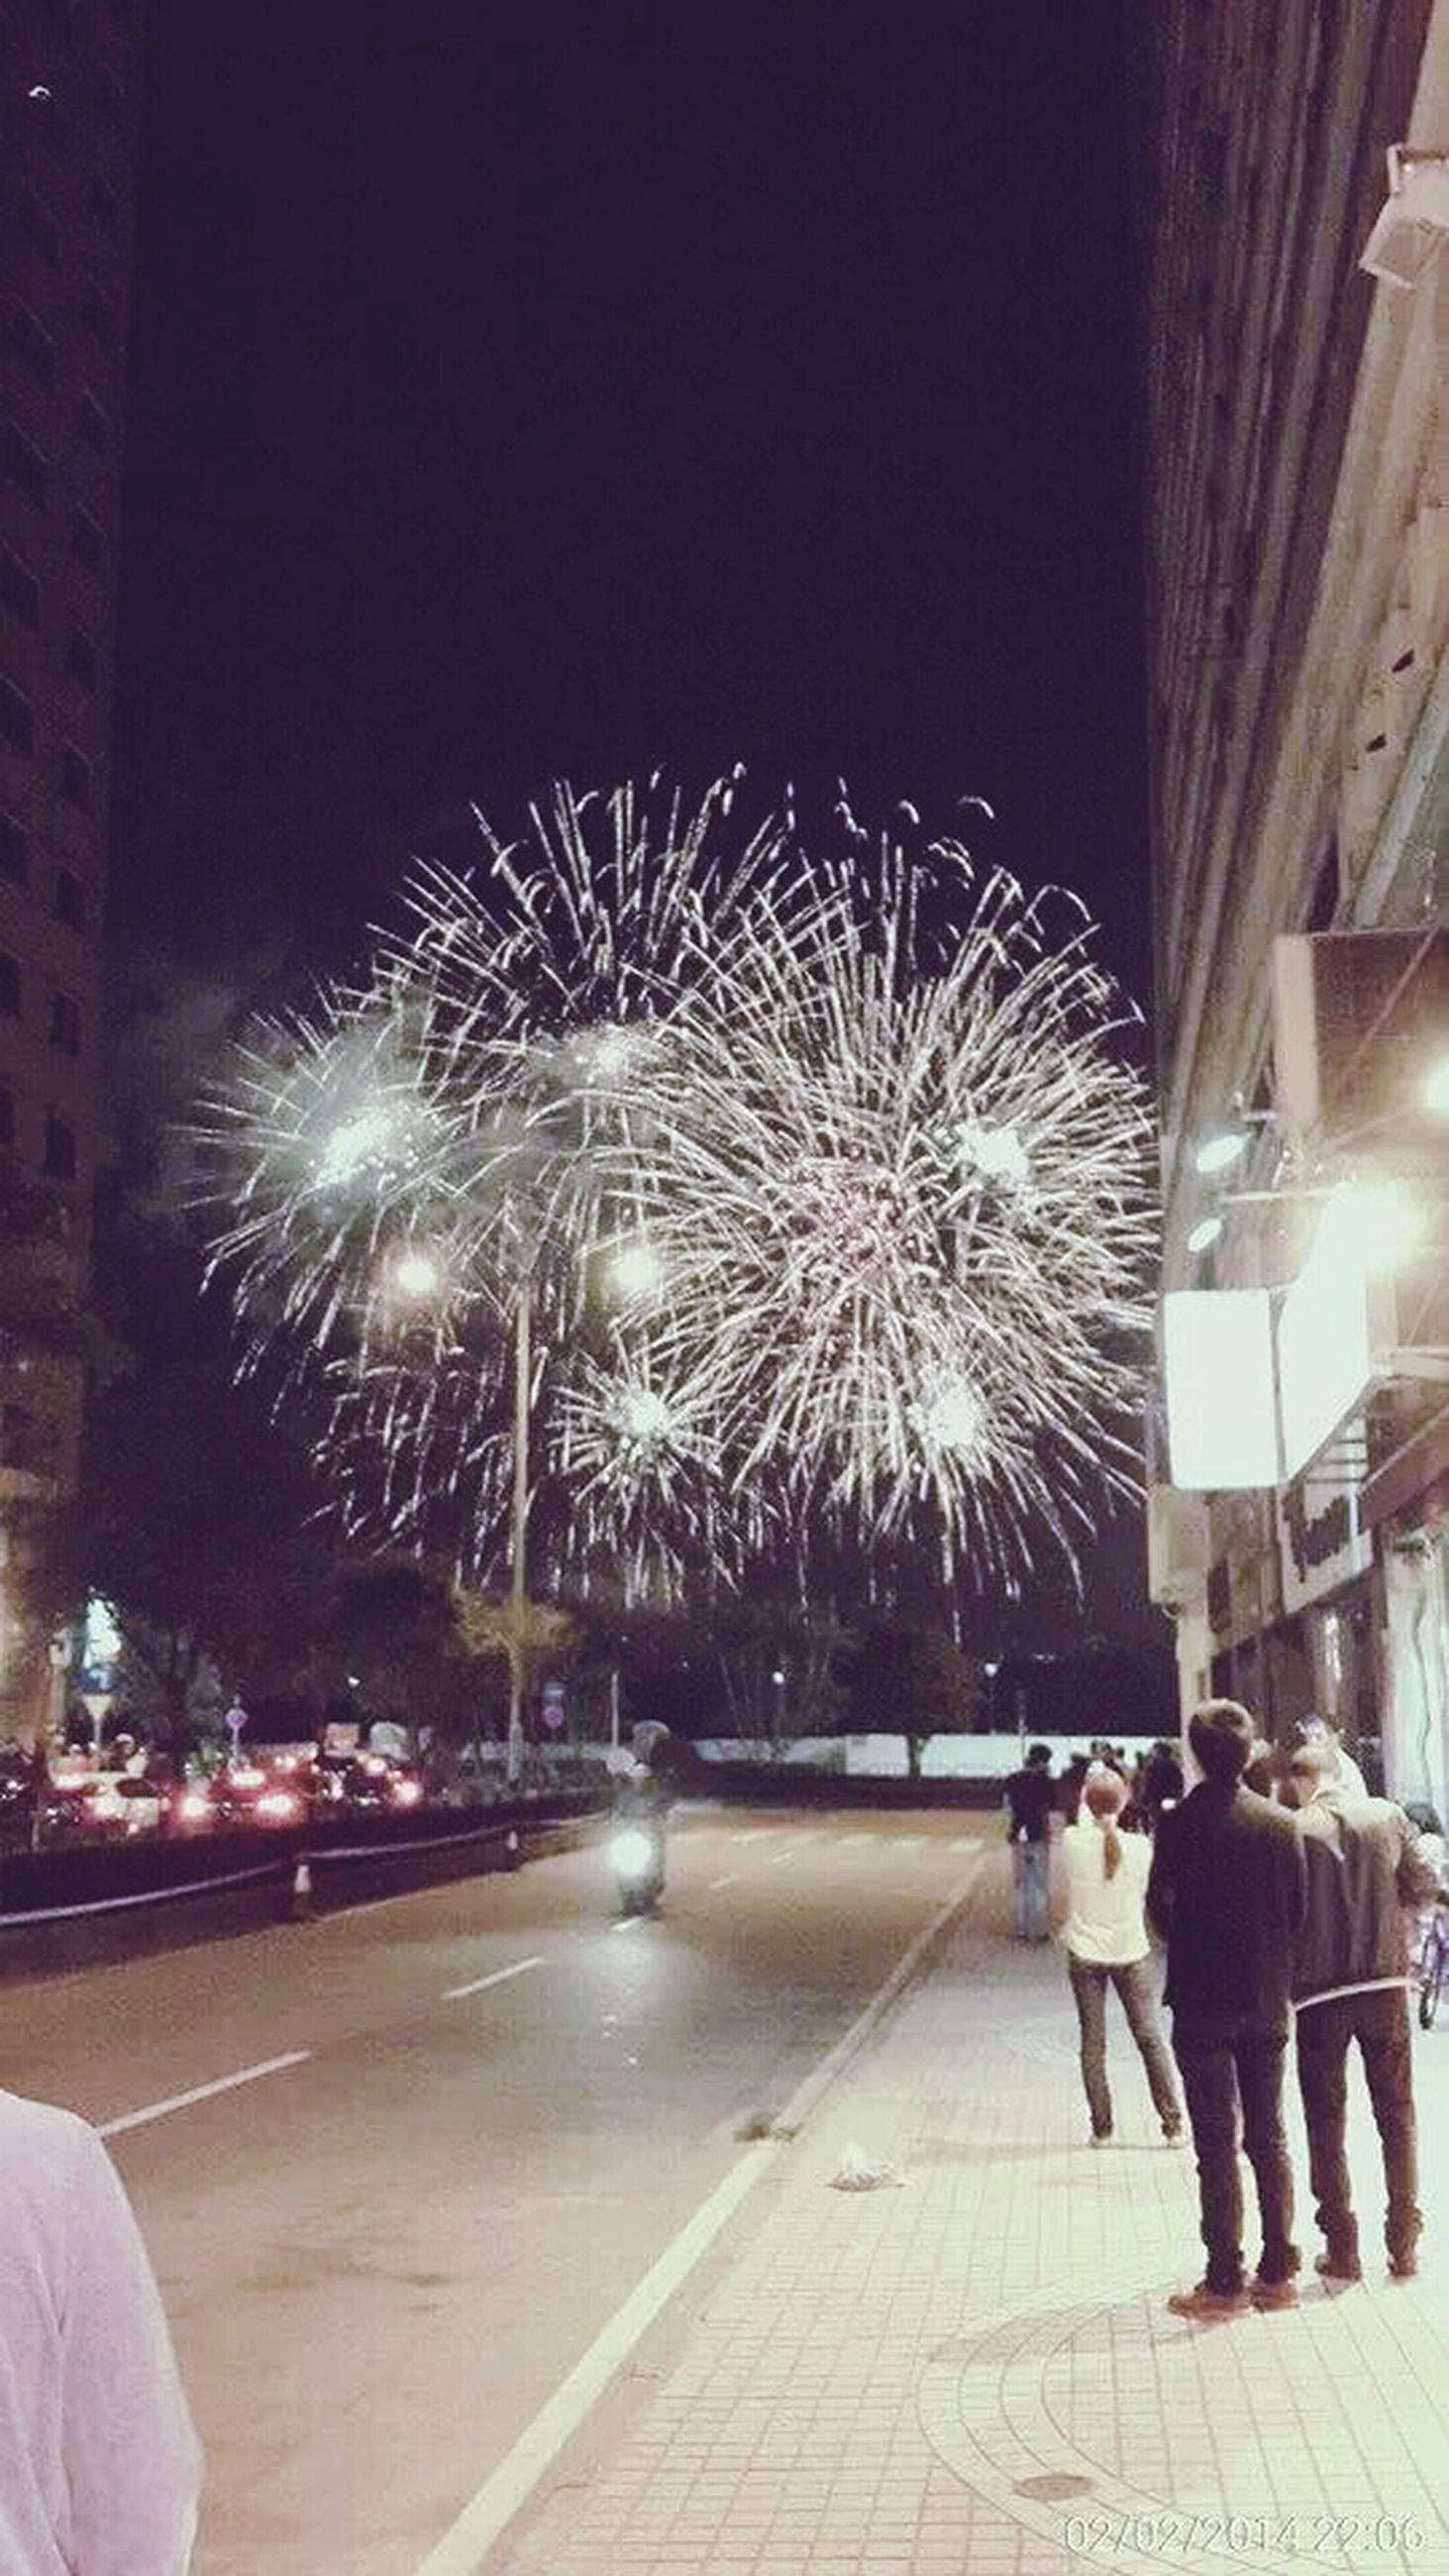 illuminated, night, arts culture and entertainment, celebration, lifestyles, leisure activity, men, firework display, large group of people, person, motion, event, building exterior, exploding, architecture, long exposure, built structure, sparks, city